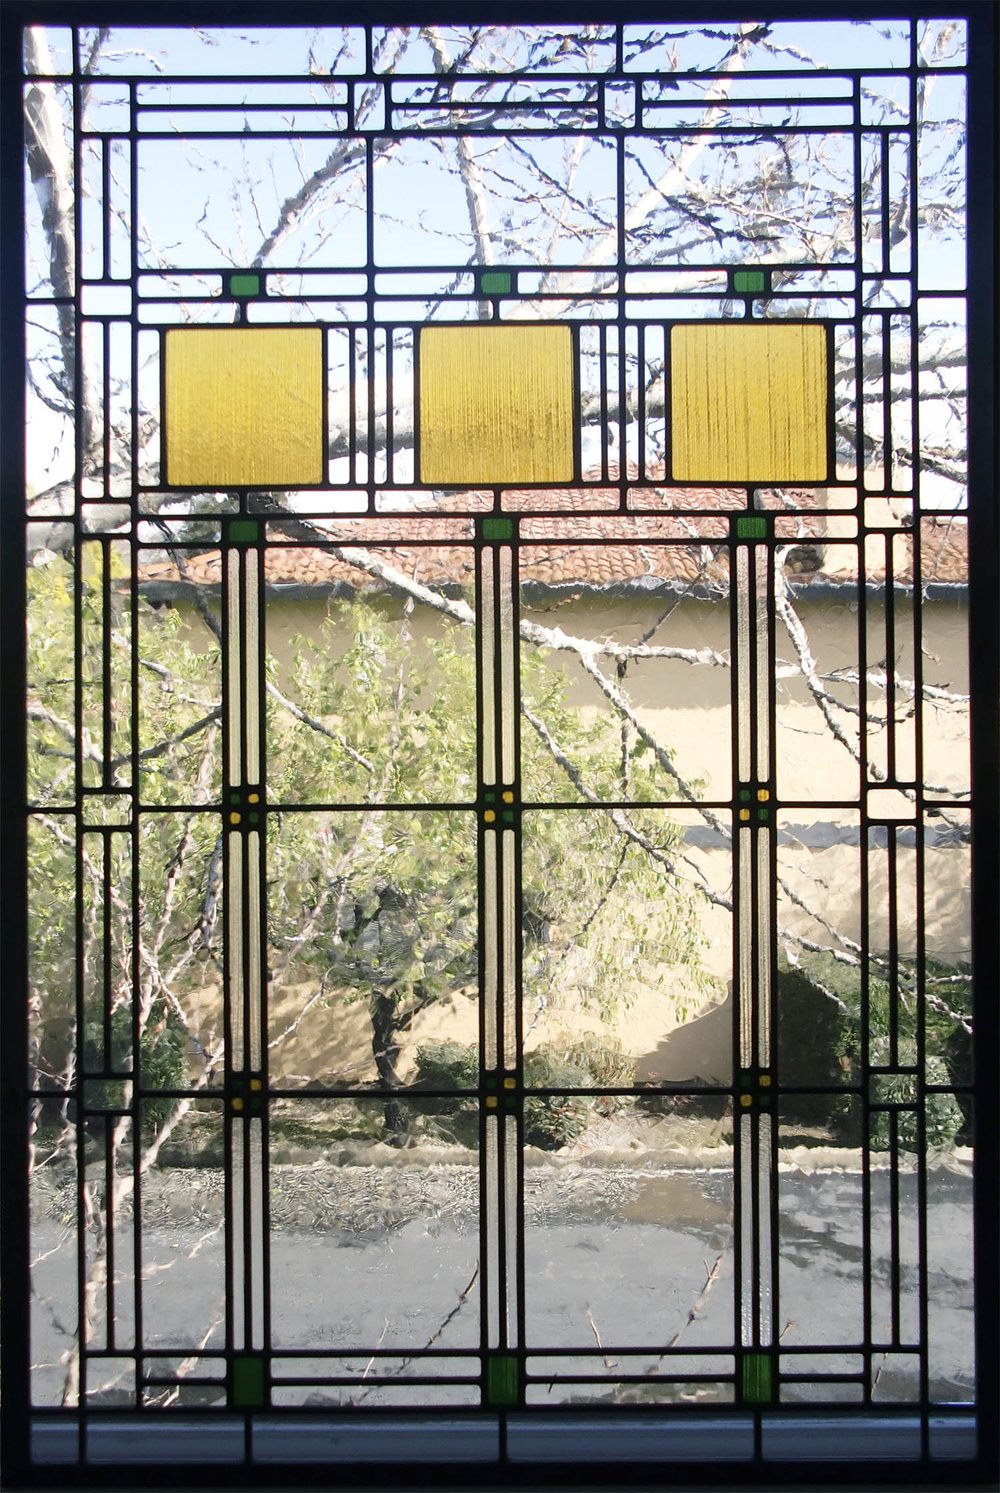 geometric craftsman leaded glass stained glass window palo alto atherton california san francisco san jose.jpg